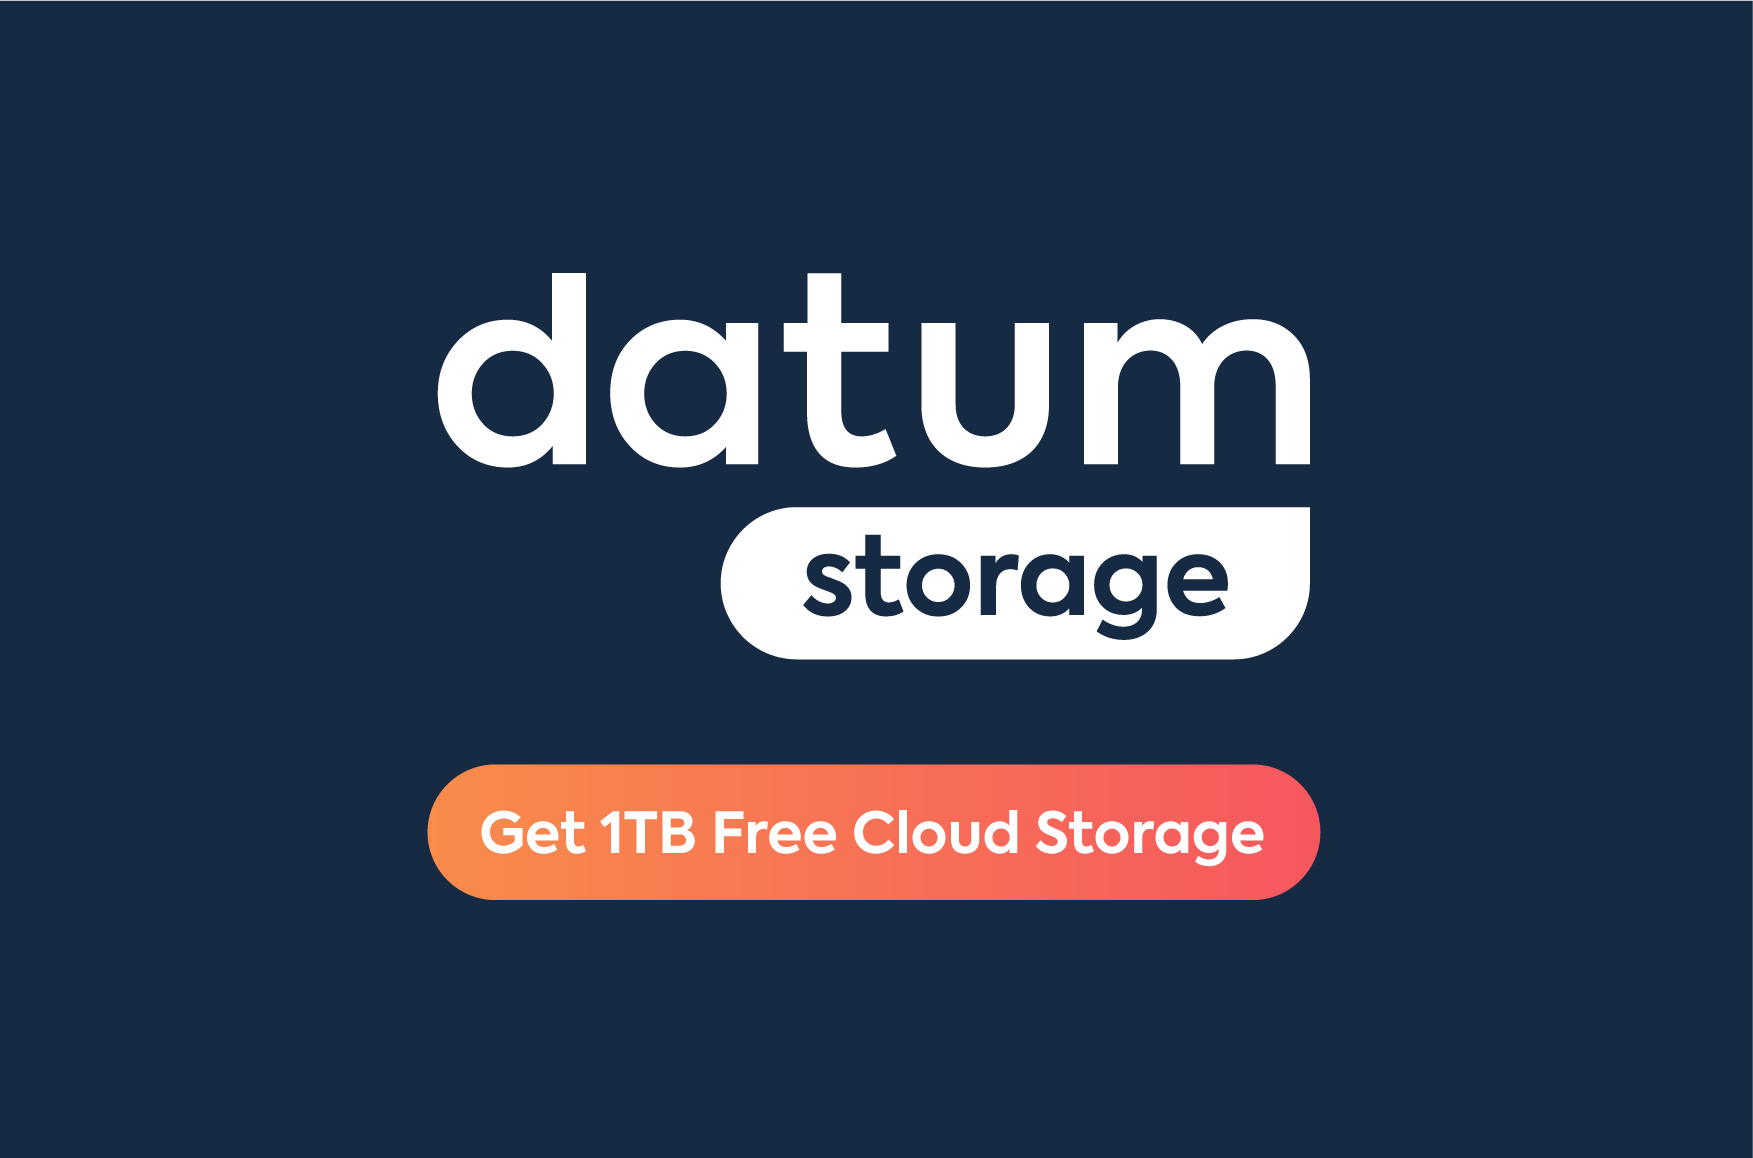 Announcing Datum Storage: Sign up today to get 1TB free